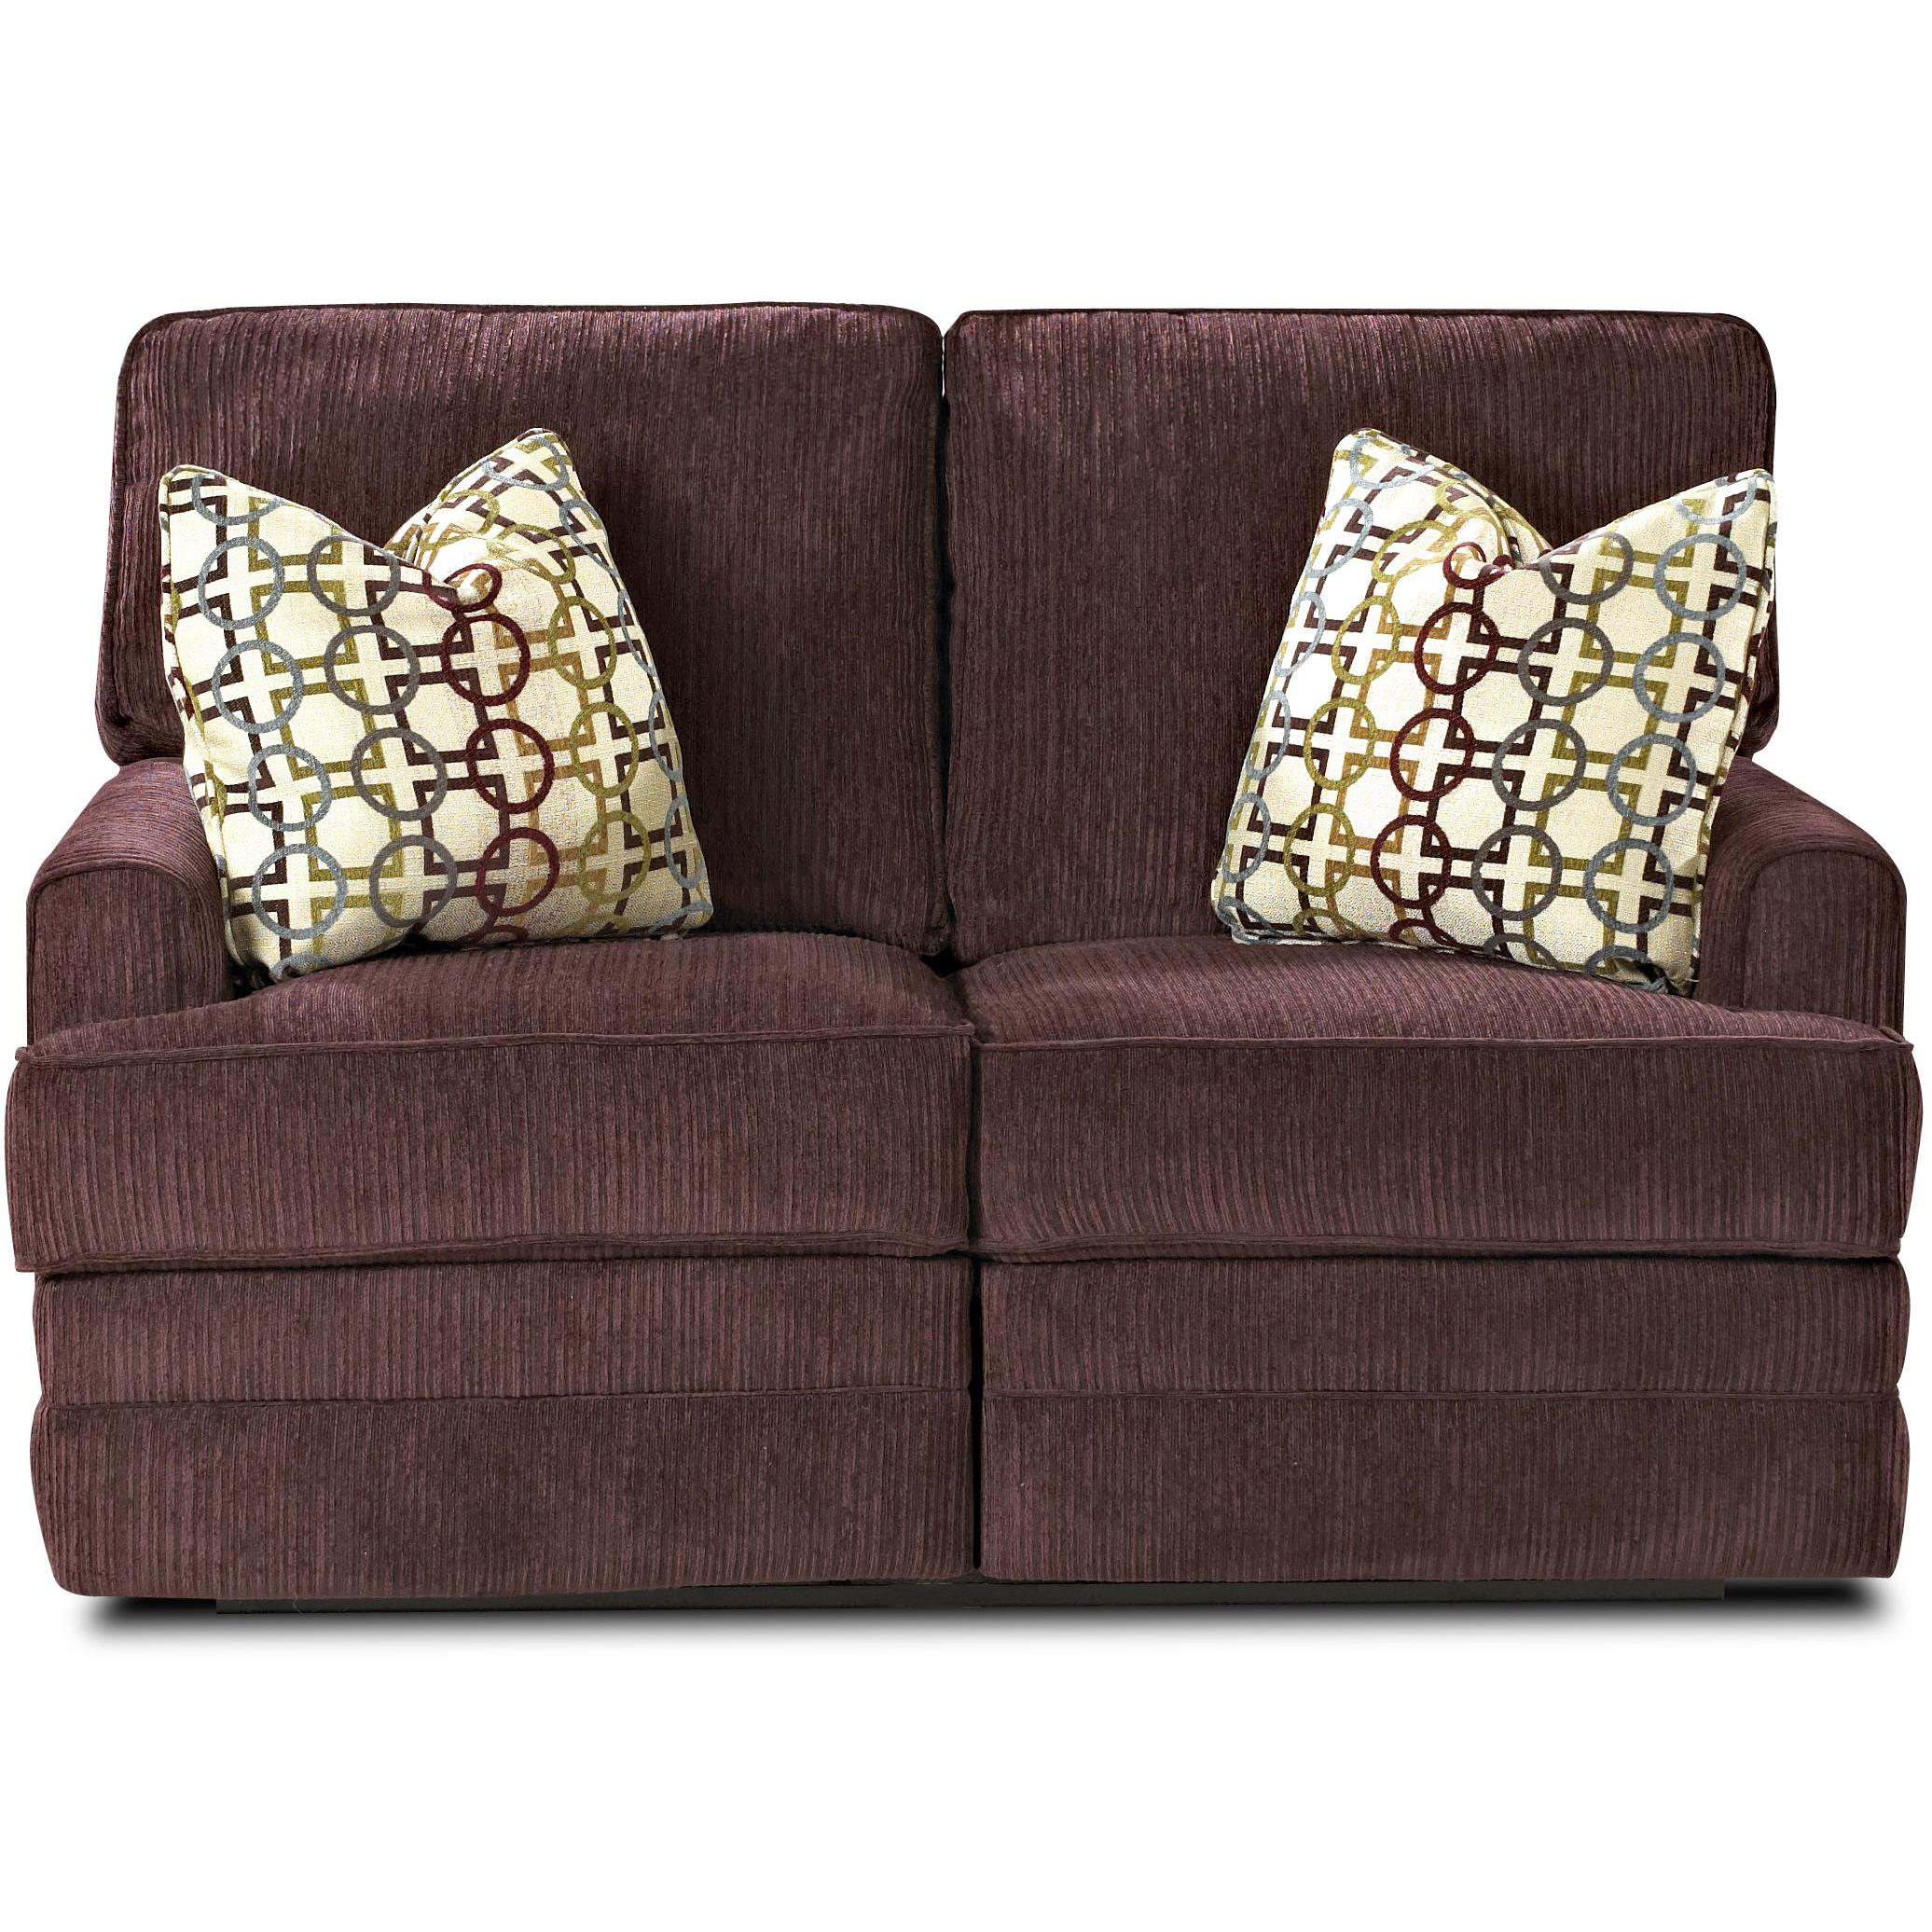 Klaussner Callahan Casual Power Reclining Love Seat - Item Number: 78803 PWRLS-Korey Eggplant